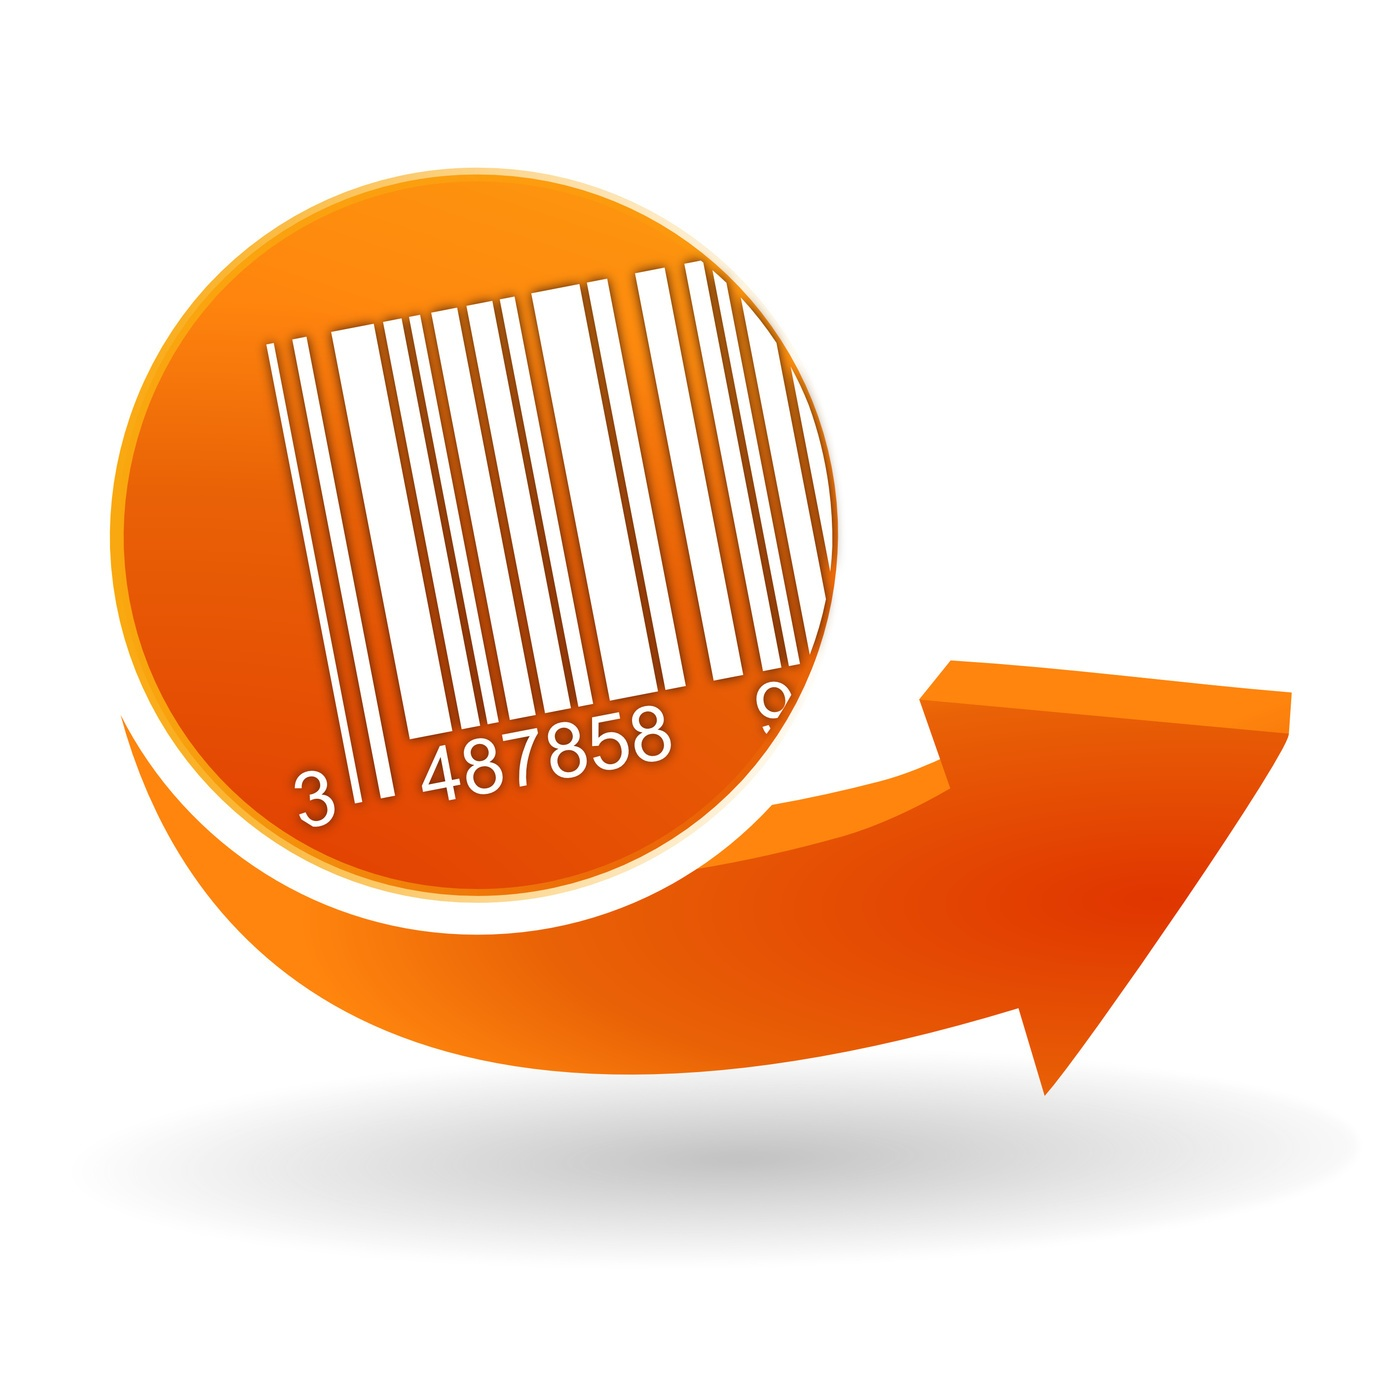 Arrow Inks for Barcode Applications